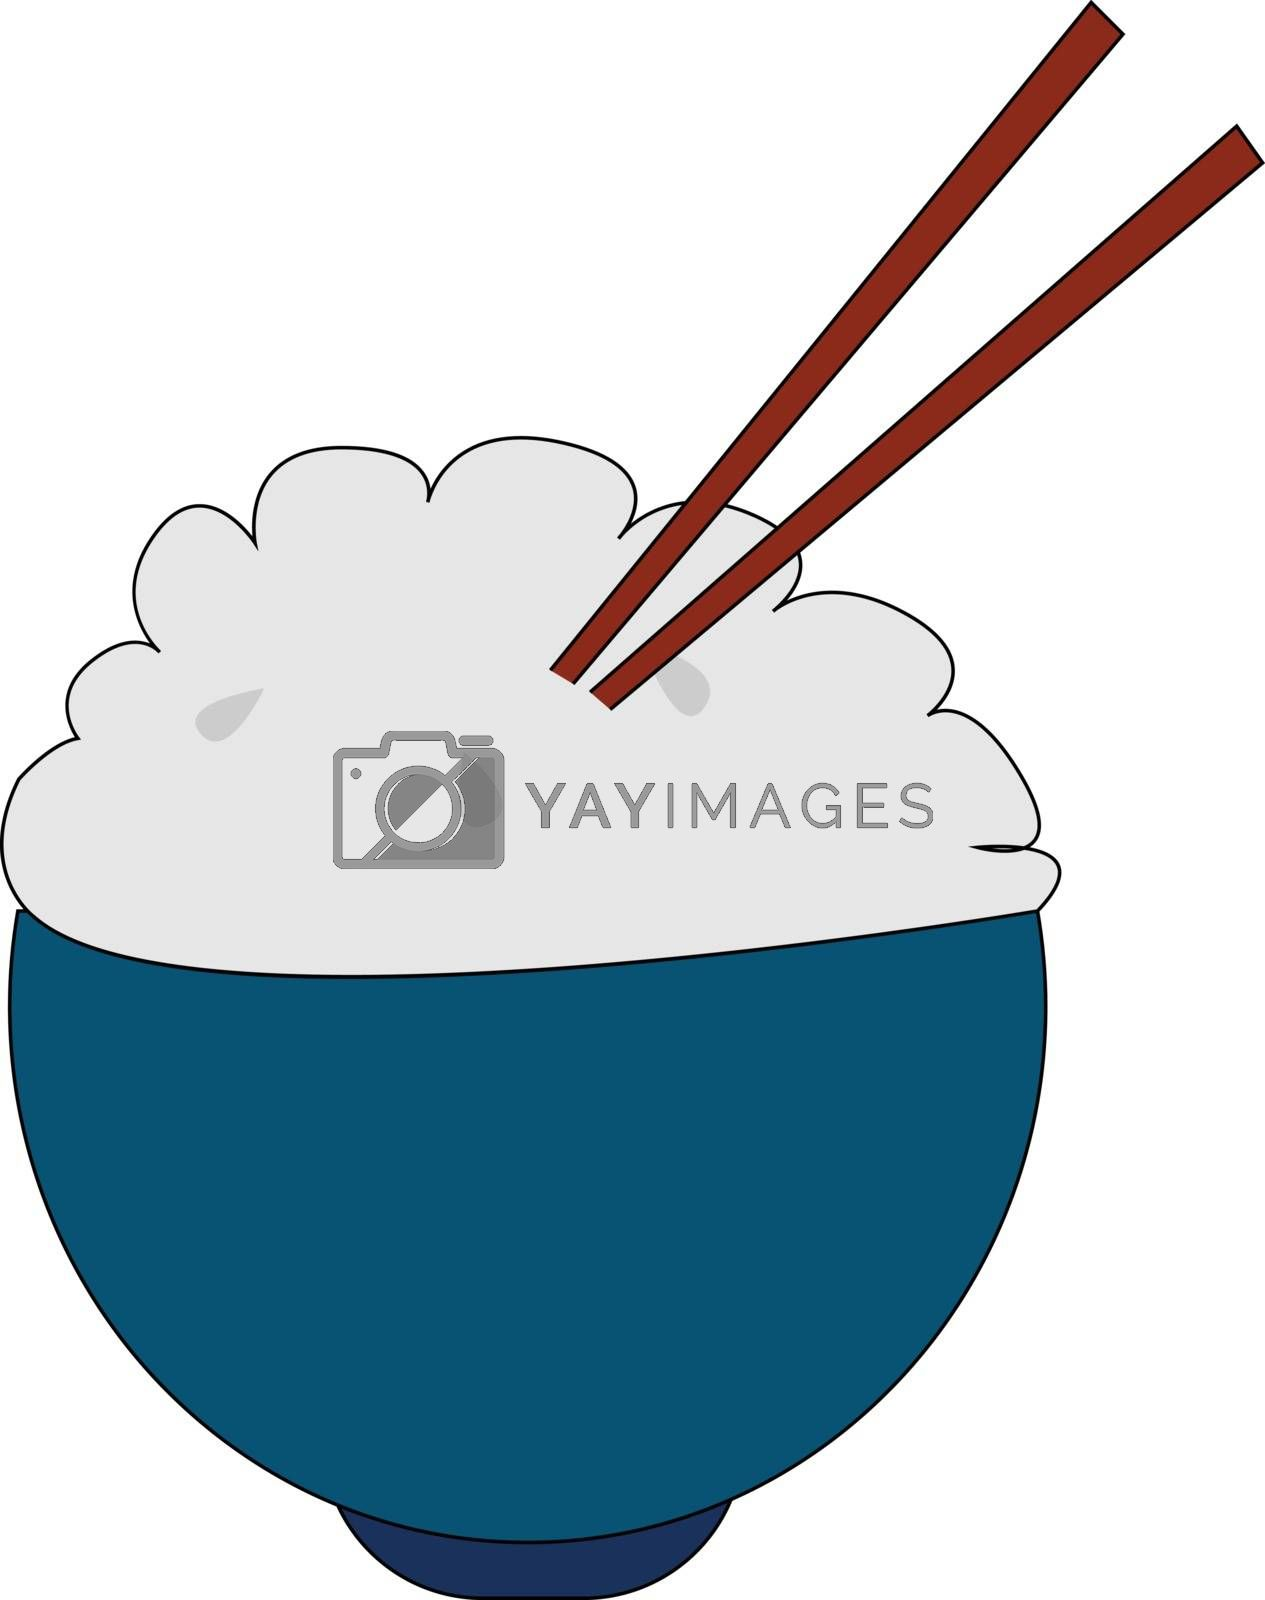 Royalty free image of Clipart of a bowl of rice with two wooden spatulas vector or col by Morphart